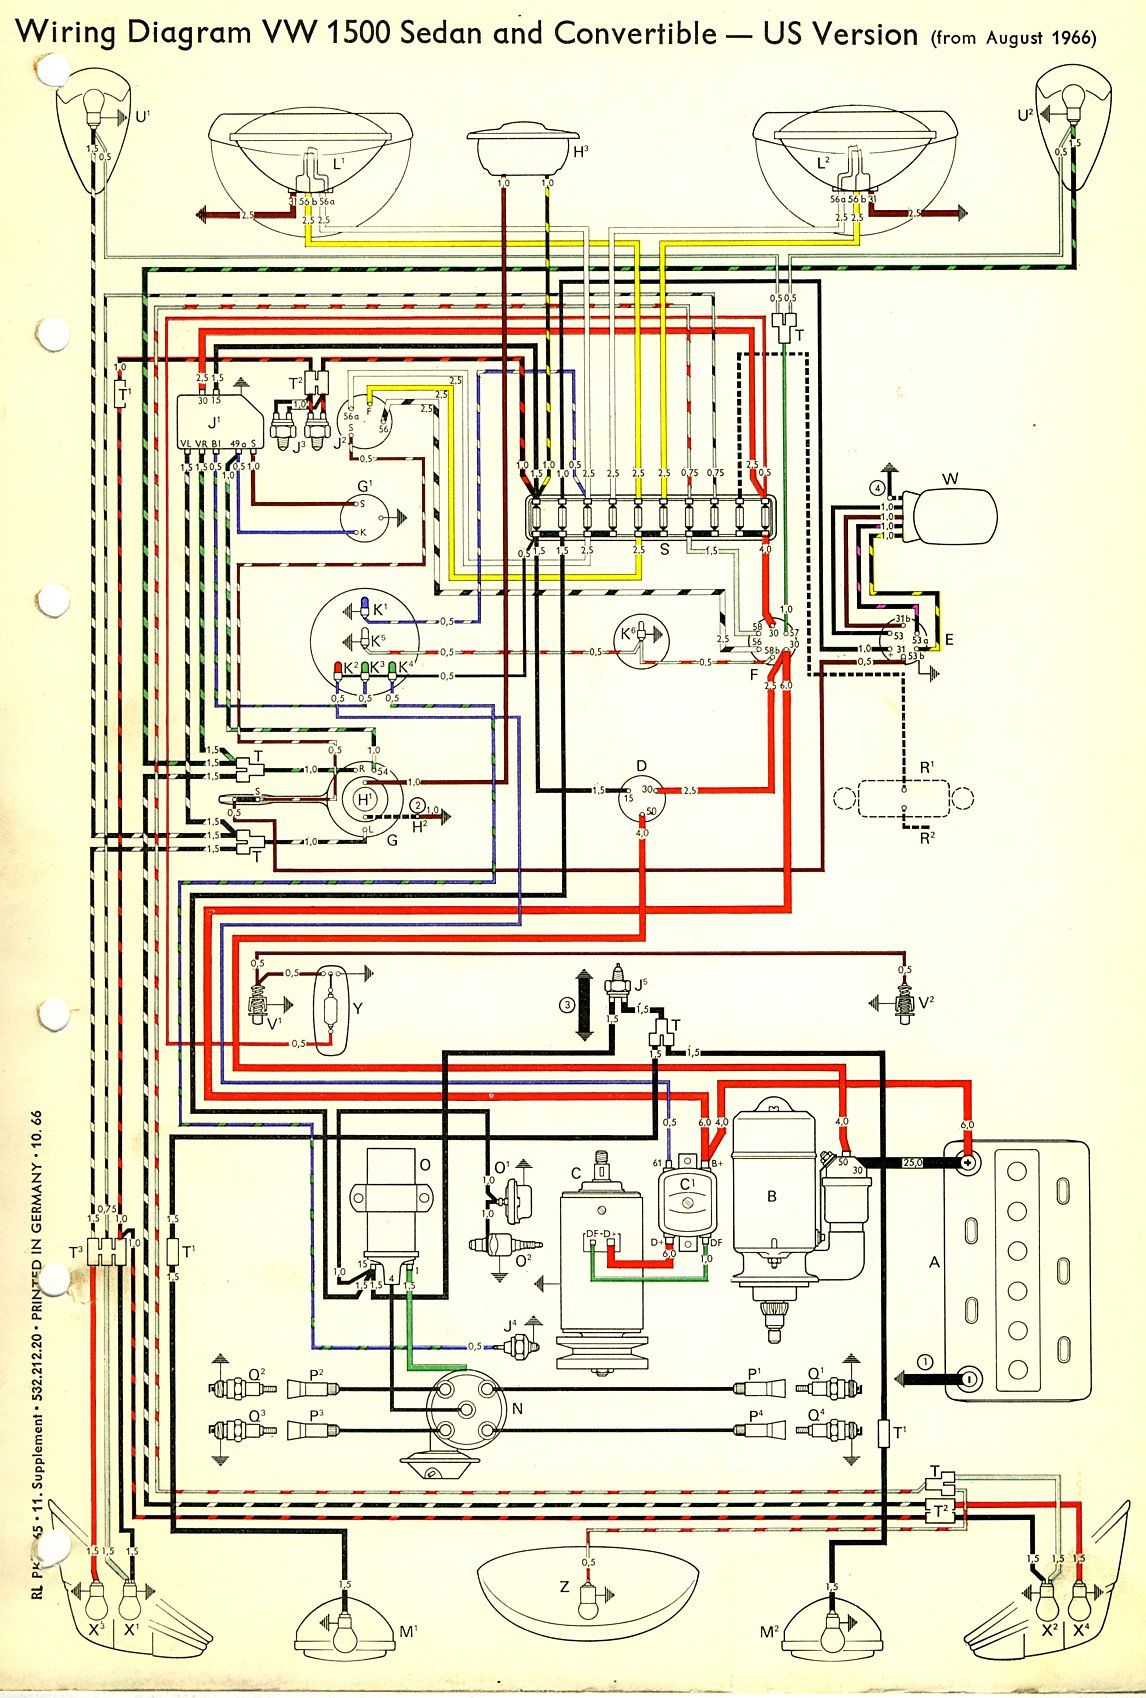 1adf990c0efb617c789fdd21338448b0 1967 beetle wiring diagram (usa) thegoldenbug com best 1967 vw vw bug wiring diagram at gsmx.co